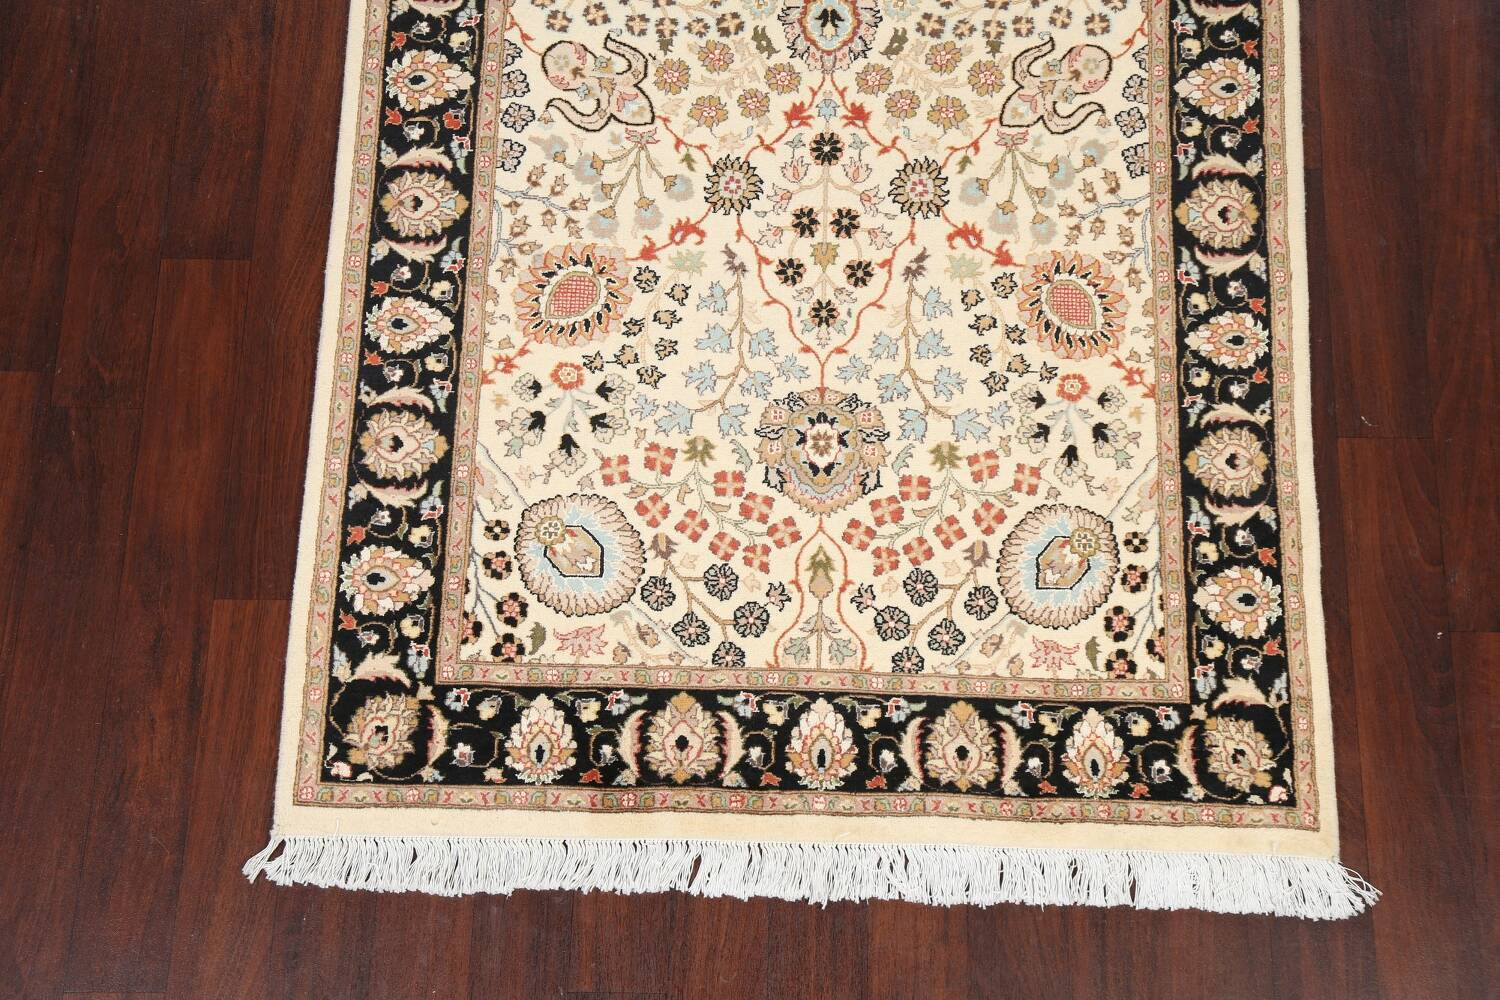 Vegetable Dye Floral Tabriz Oriental Area Rug 4x7 image 5